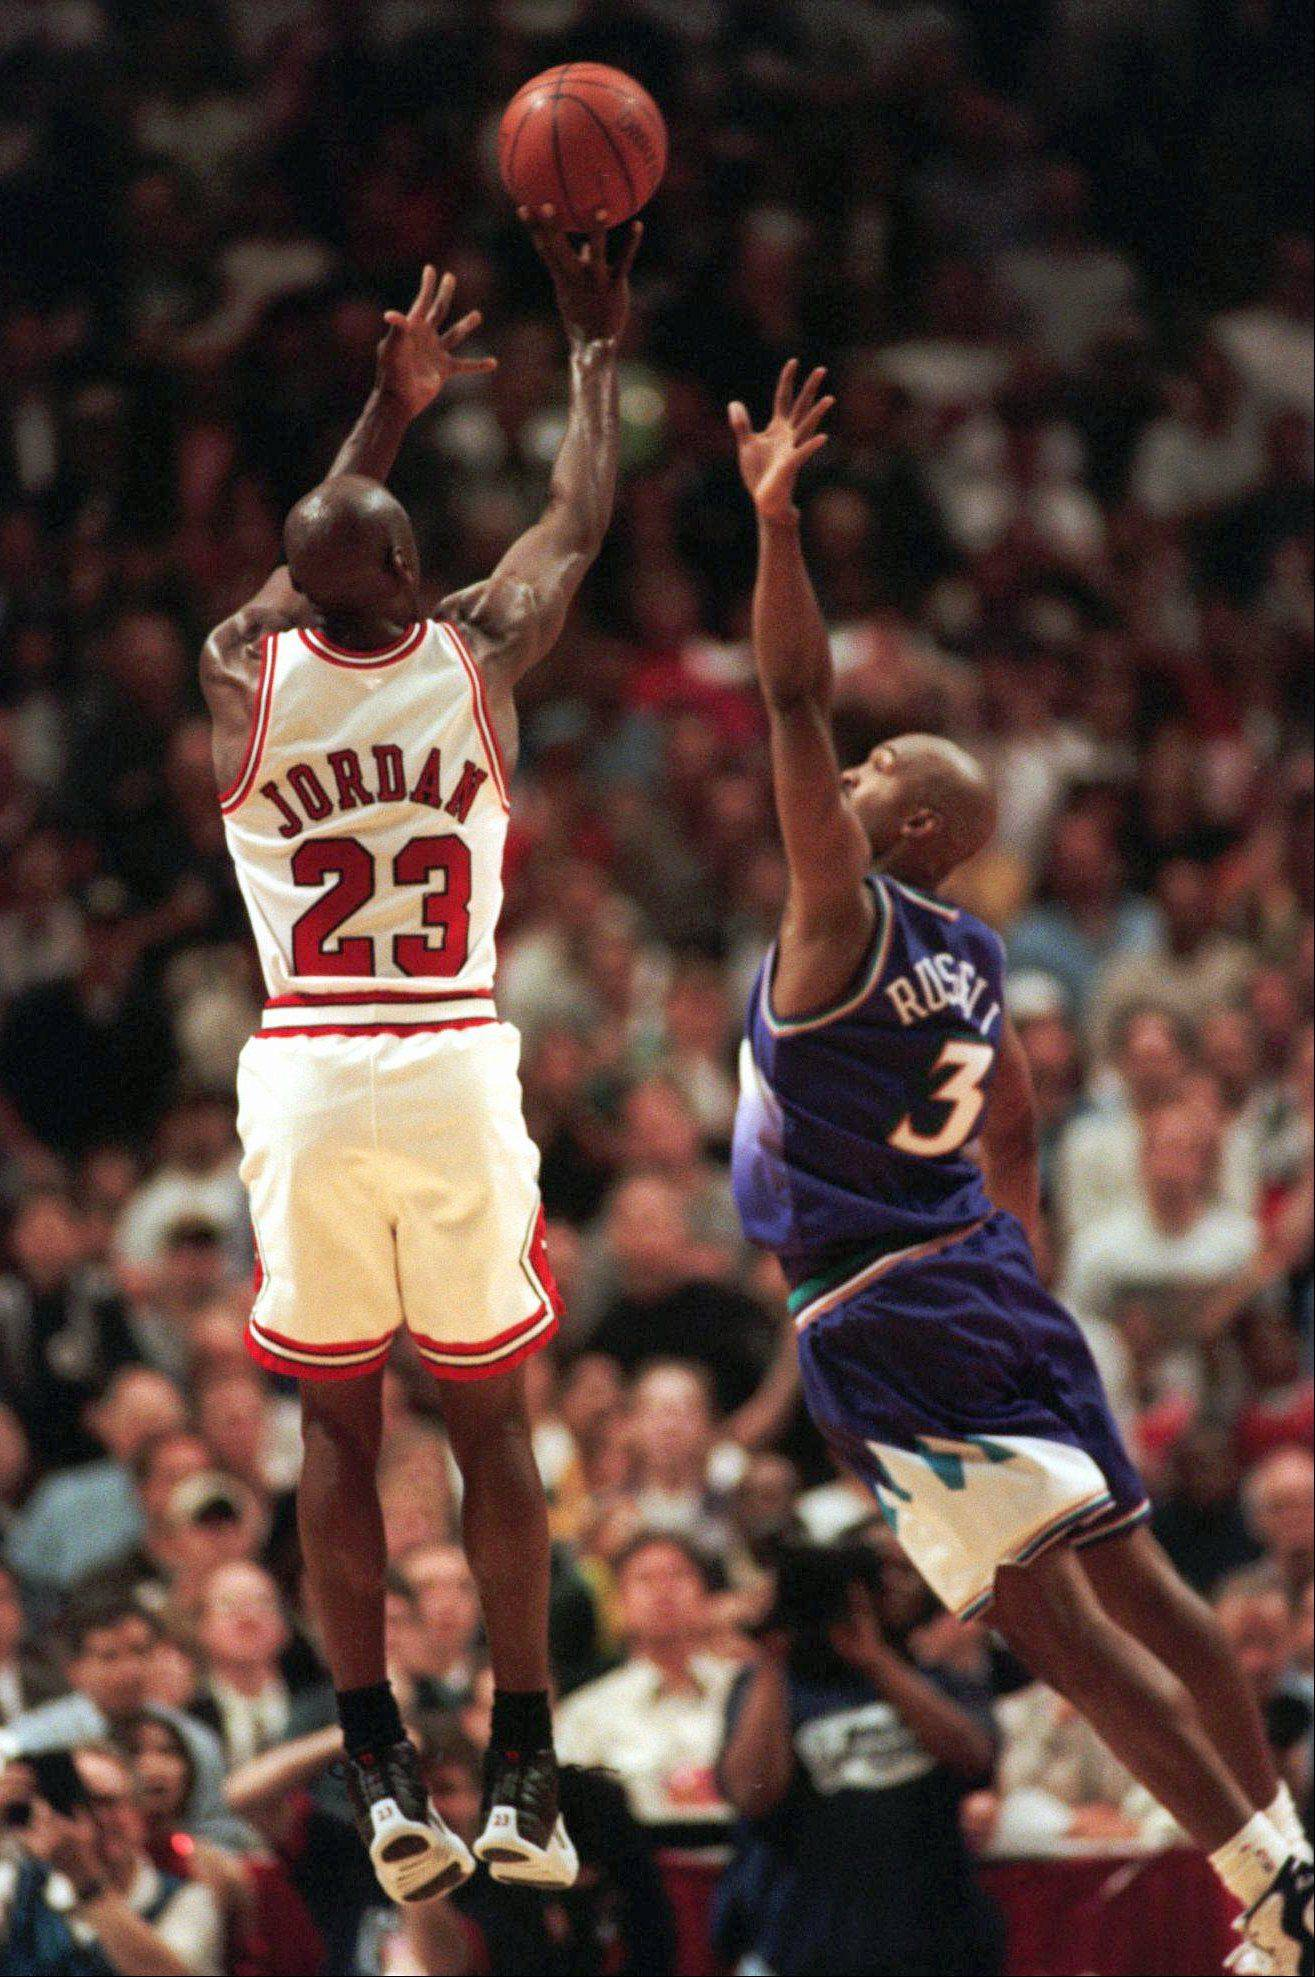 Michael Jordan puts up the game-winning shot over Utah Jazz forward Bryon Russell, right, to win Game 1 of the NBA Finals 84-82 Sunday, June 1, 1997, in Chicago.